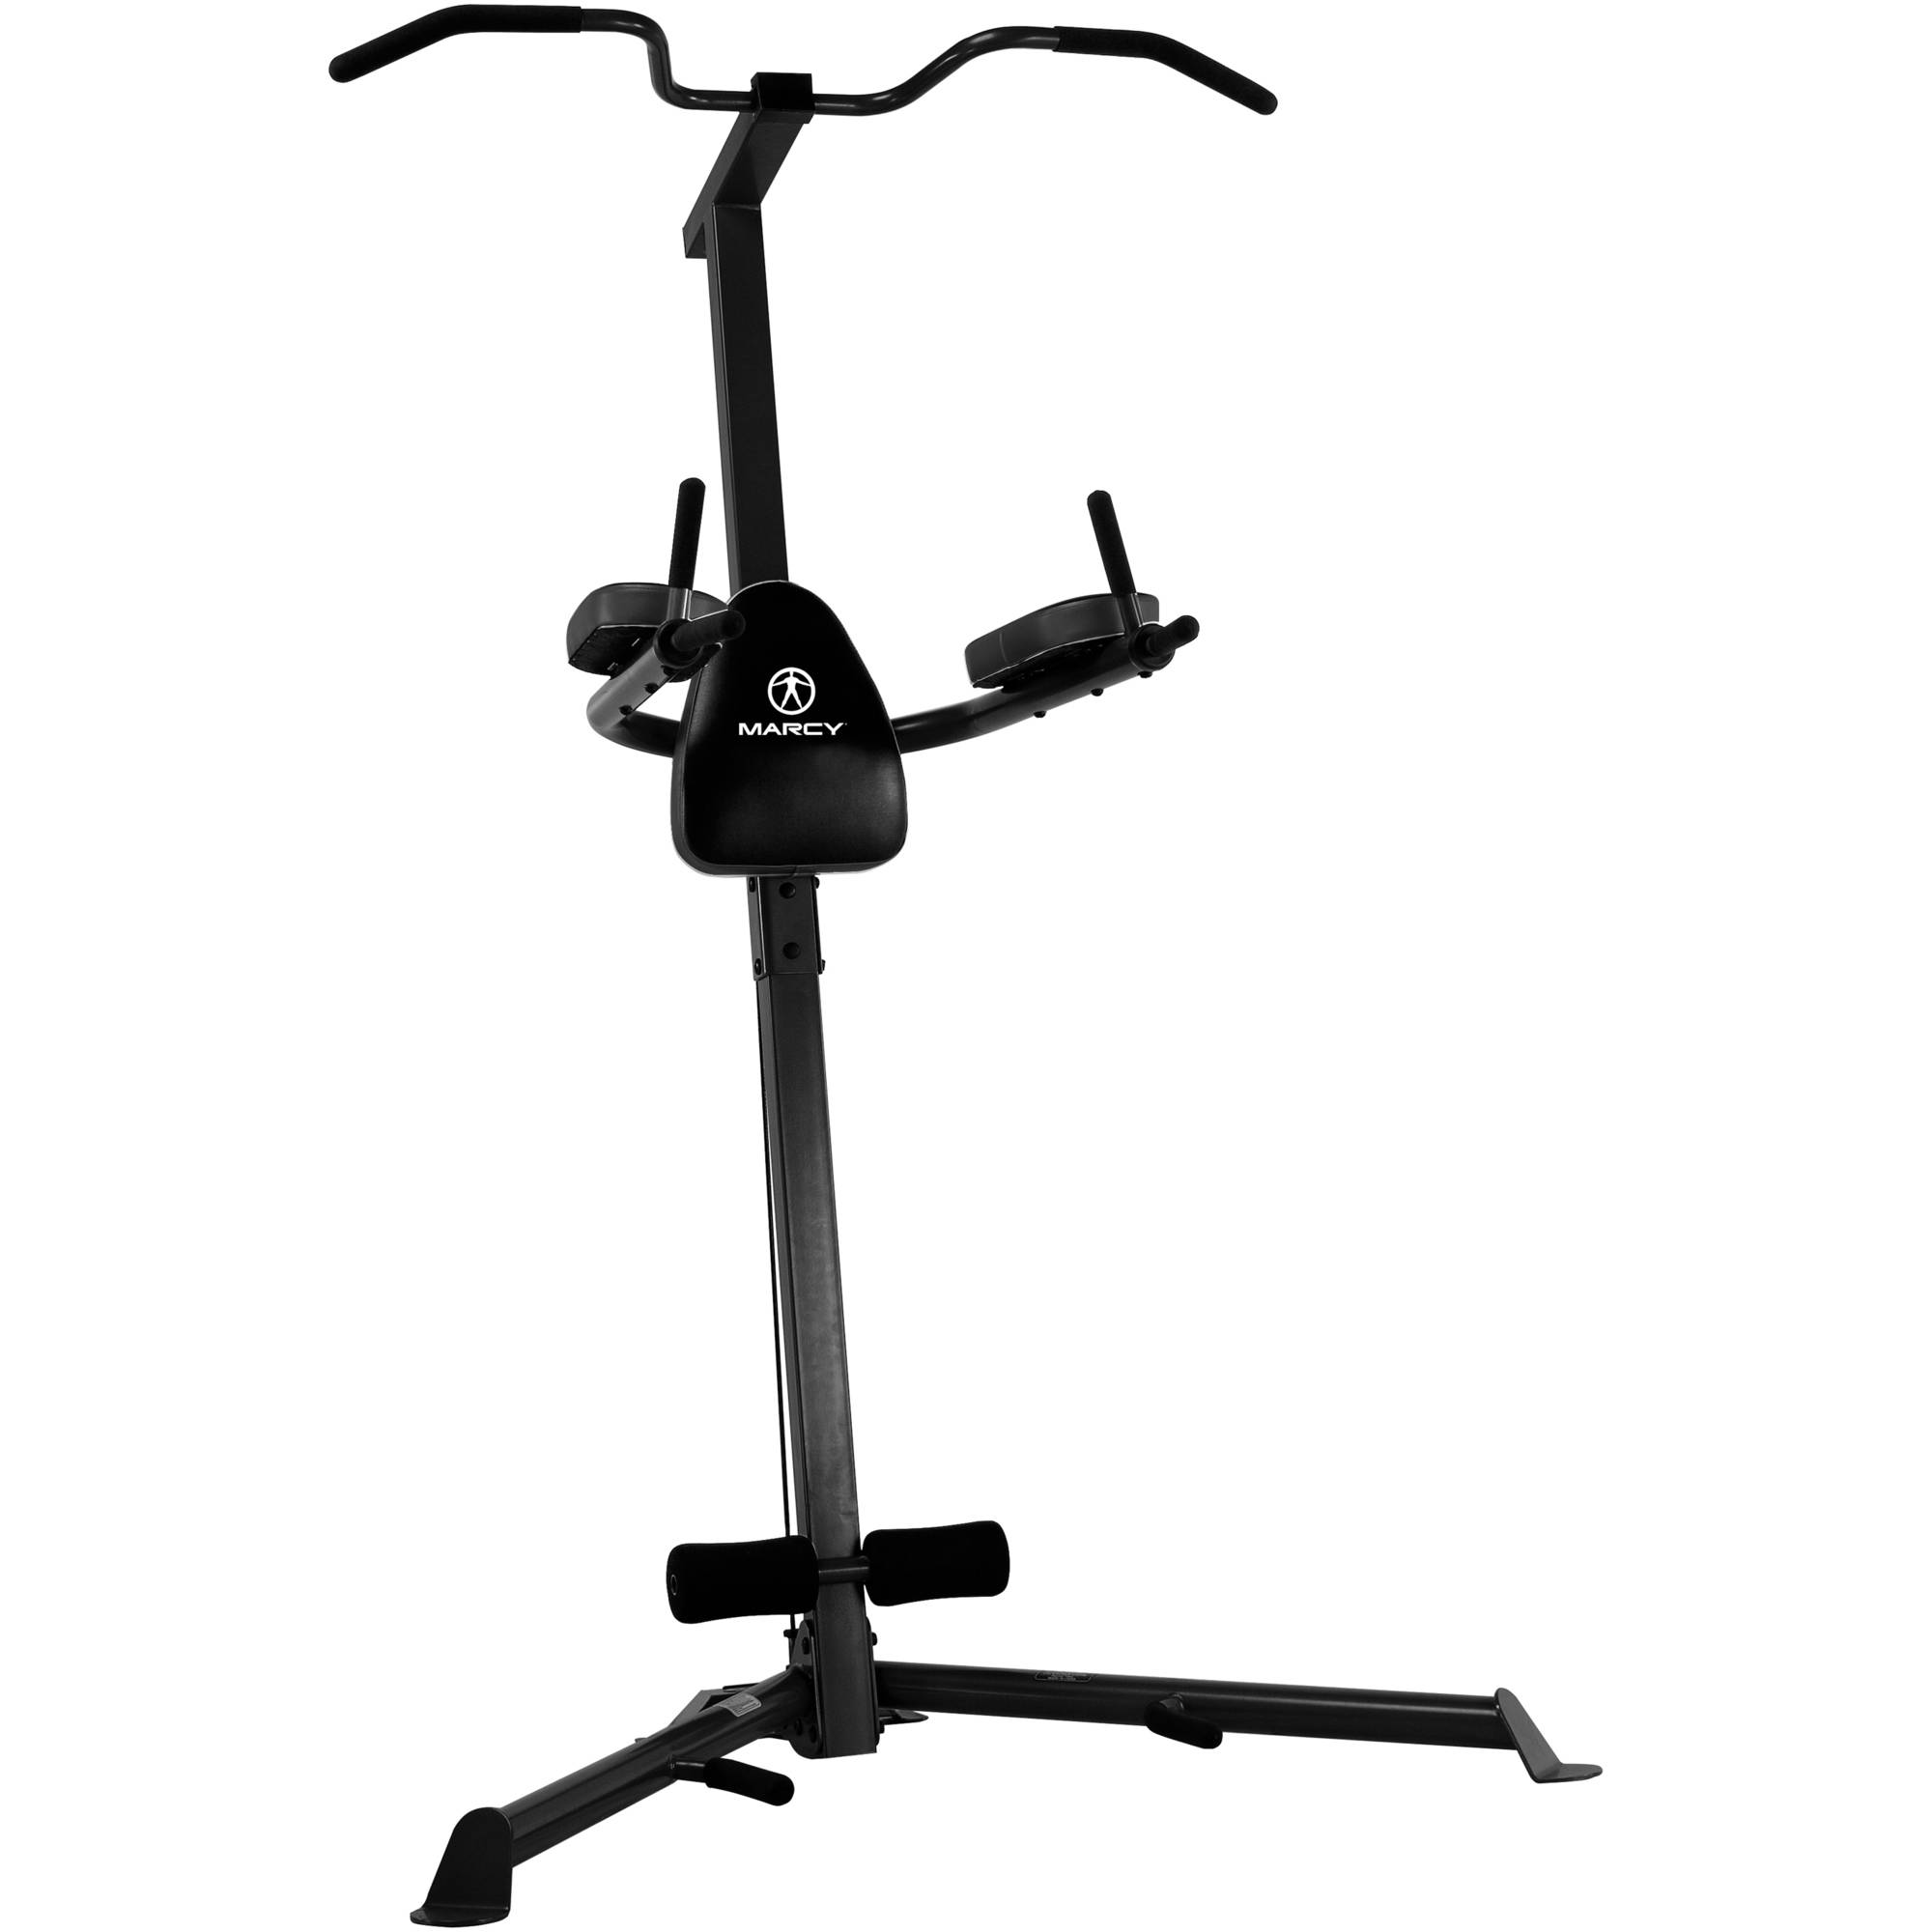 Easy Home Exercise Equipment: Marcy Power Tower TC-3508 Knee Raise & Dip Station Fitness